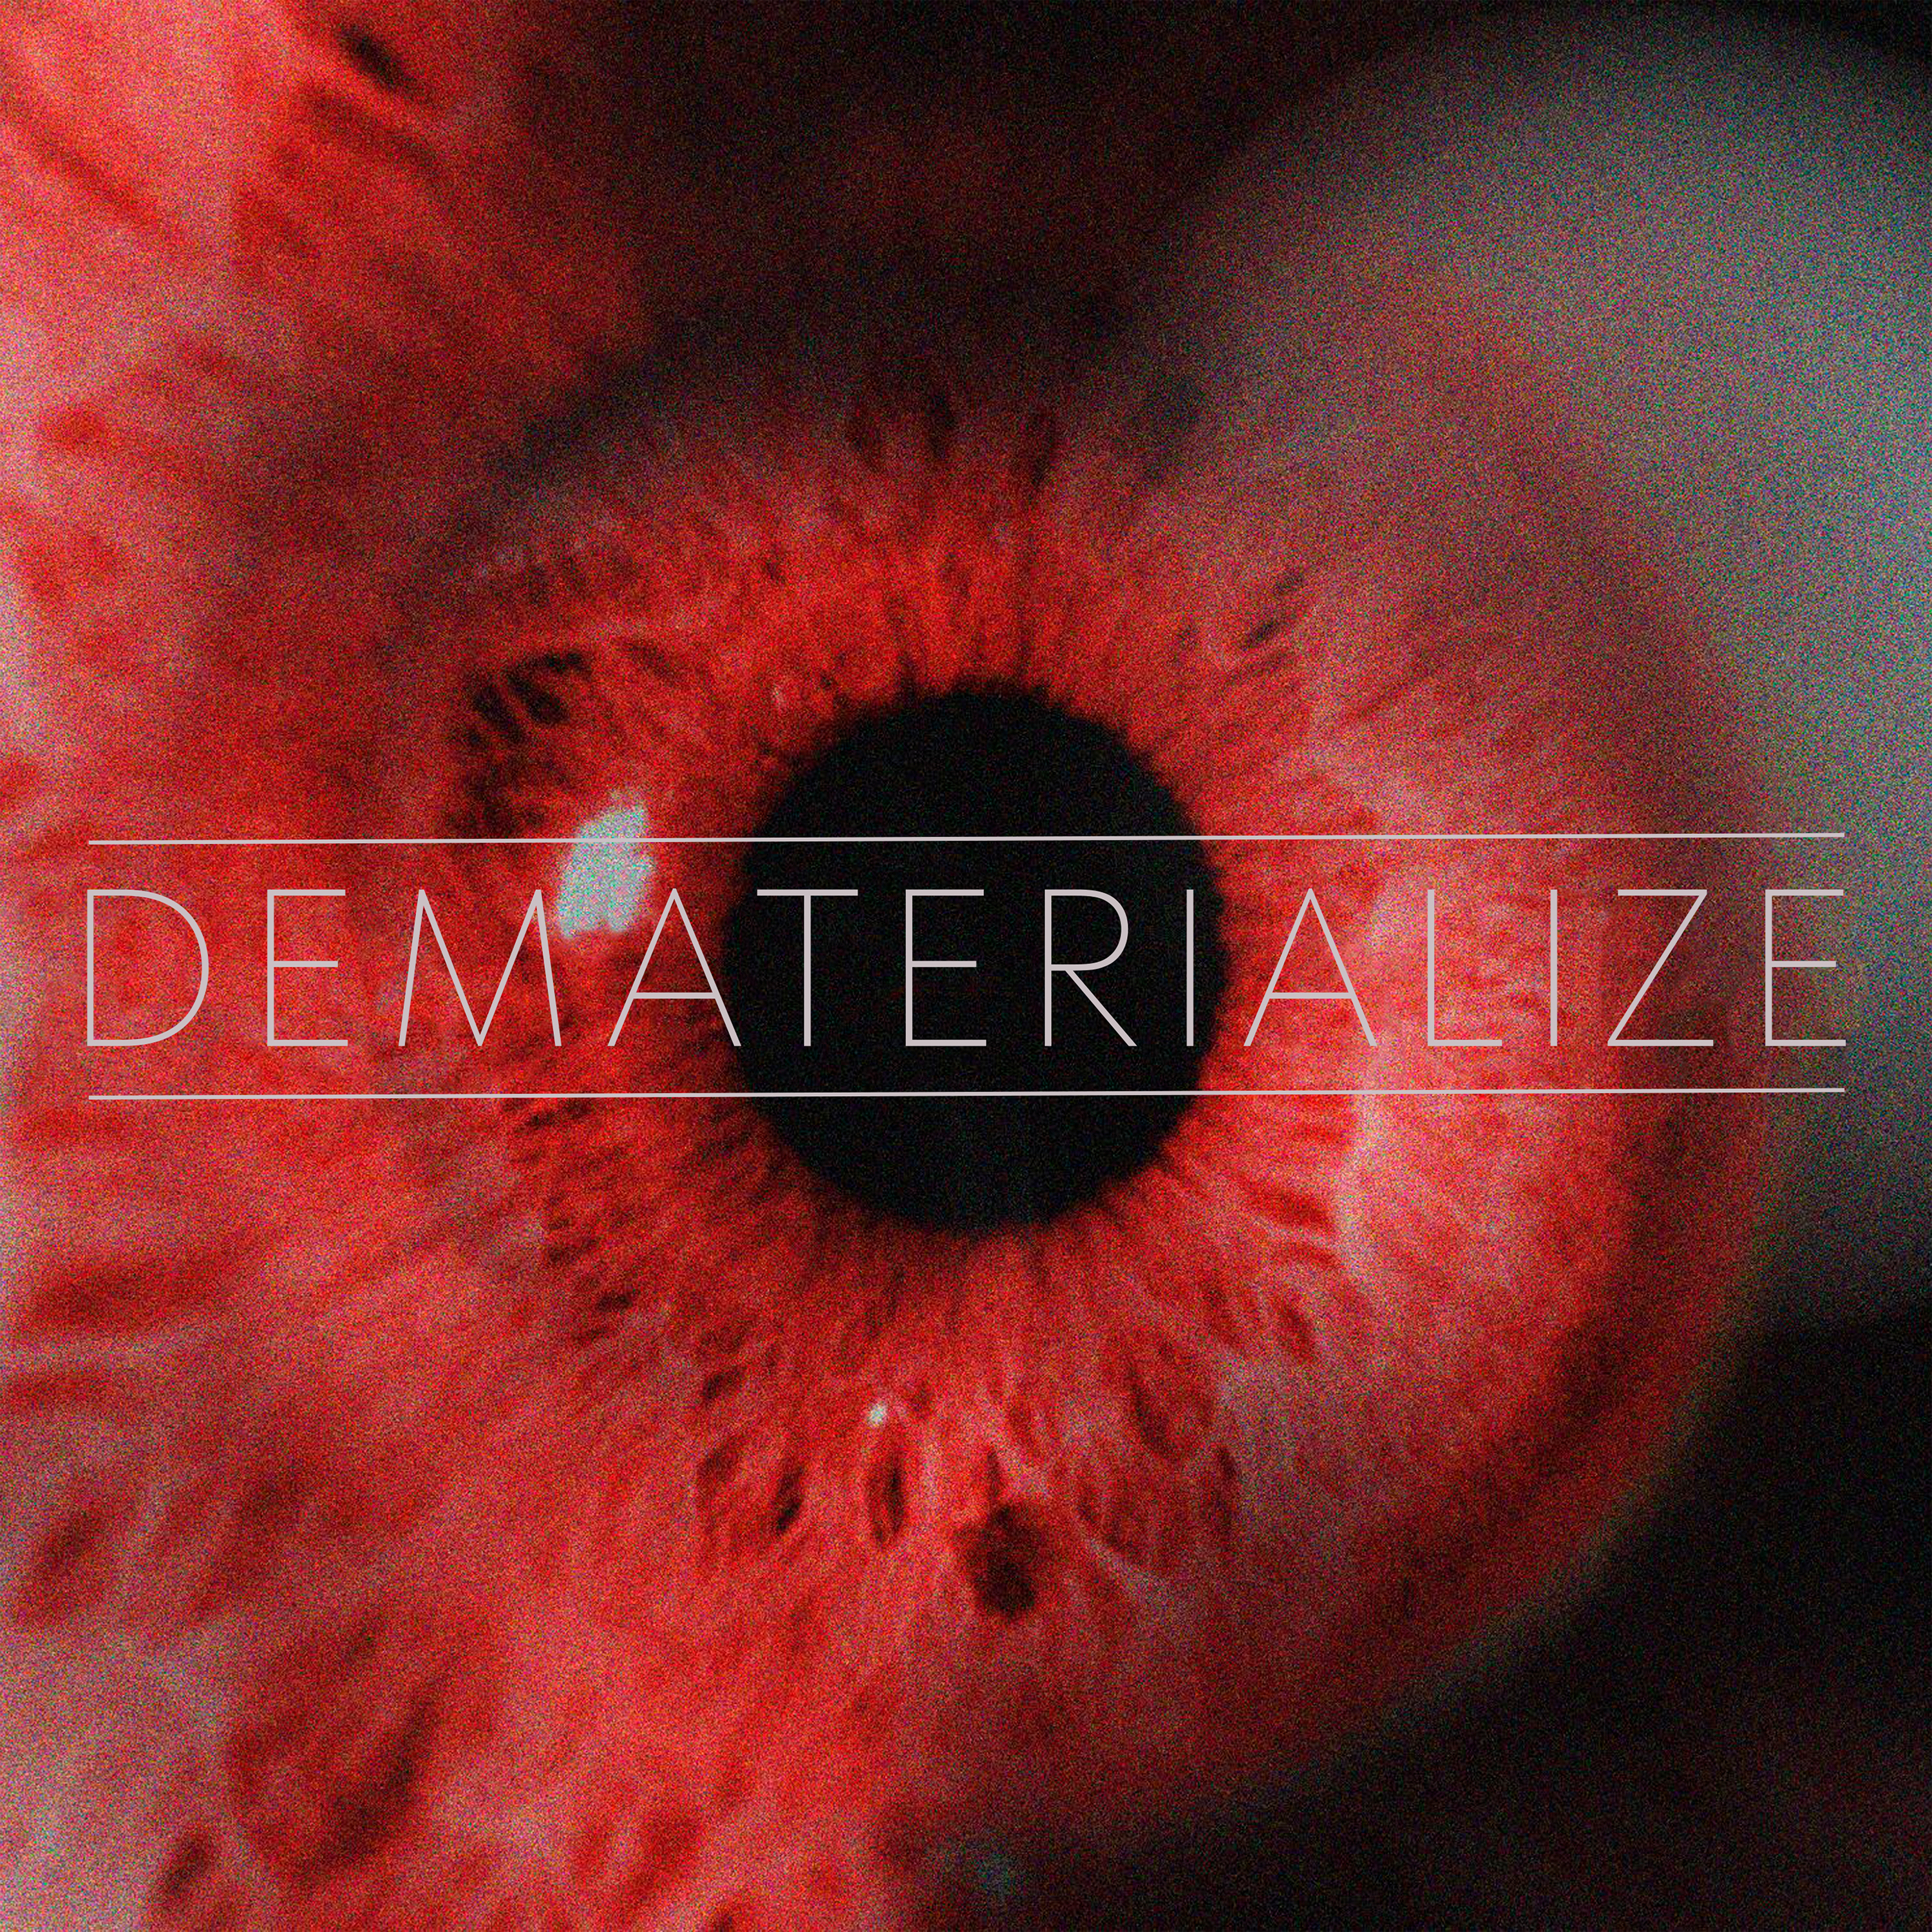 DEMATERIALIZE - Self-titled EP